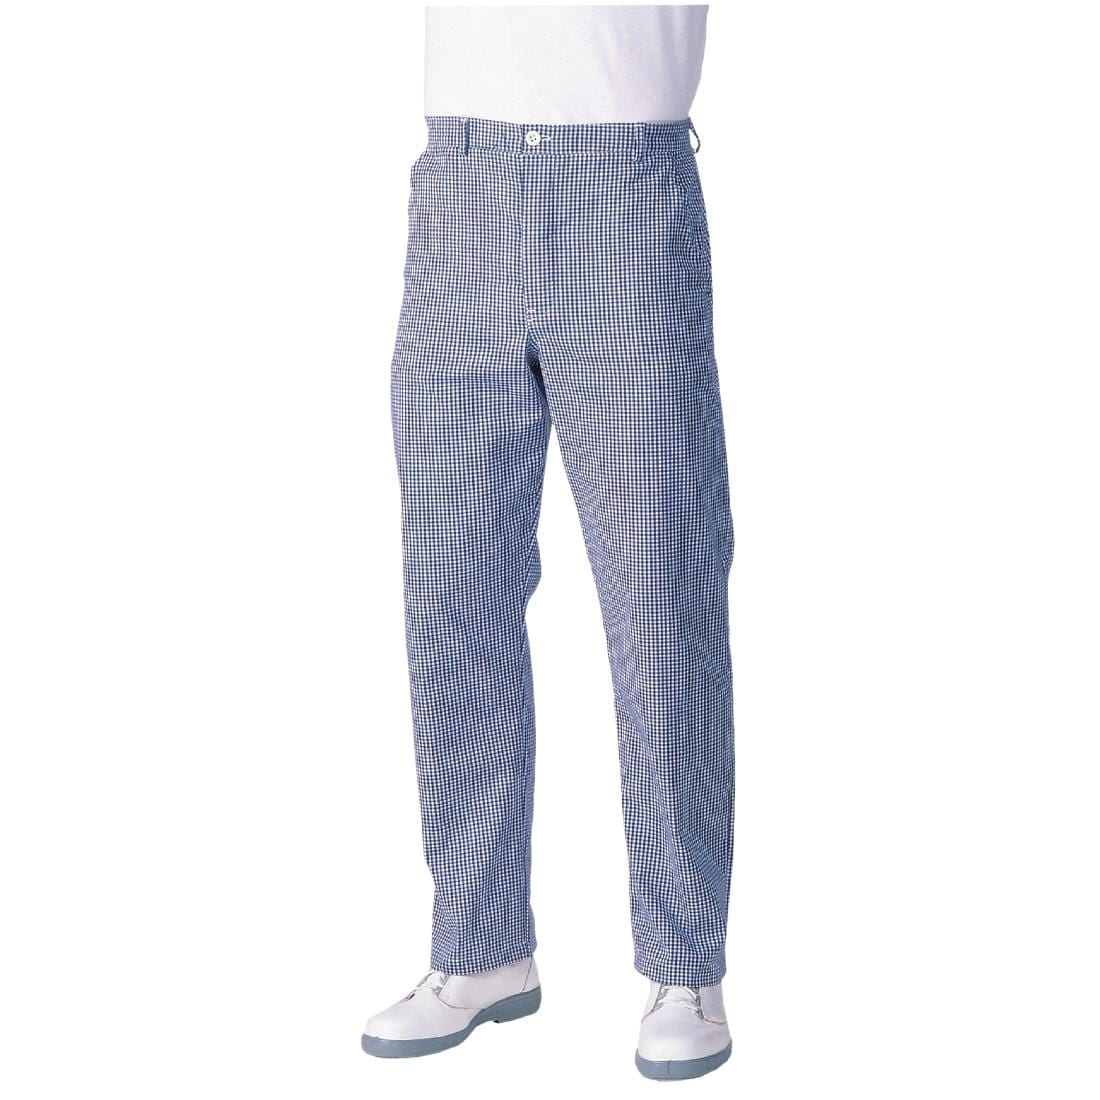 Whites Mens Chef Trousers Blue and White Check Extra Long 30in